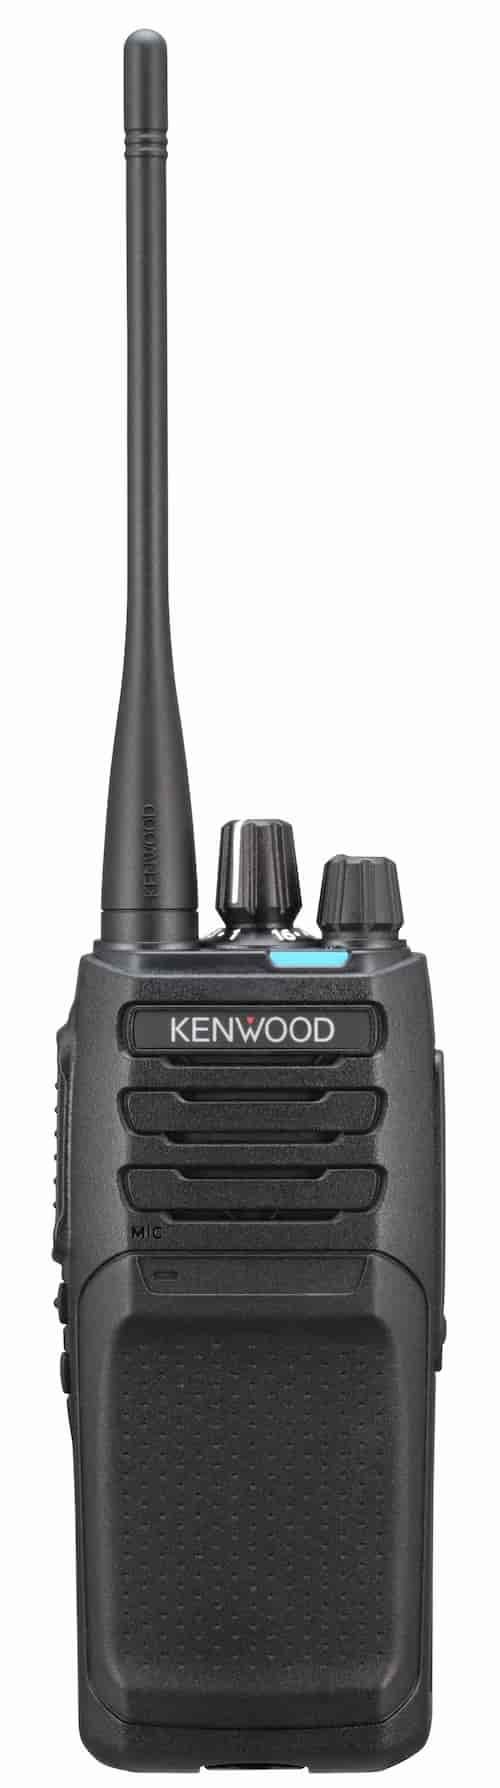 Kenwood NX1000 series radio in black